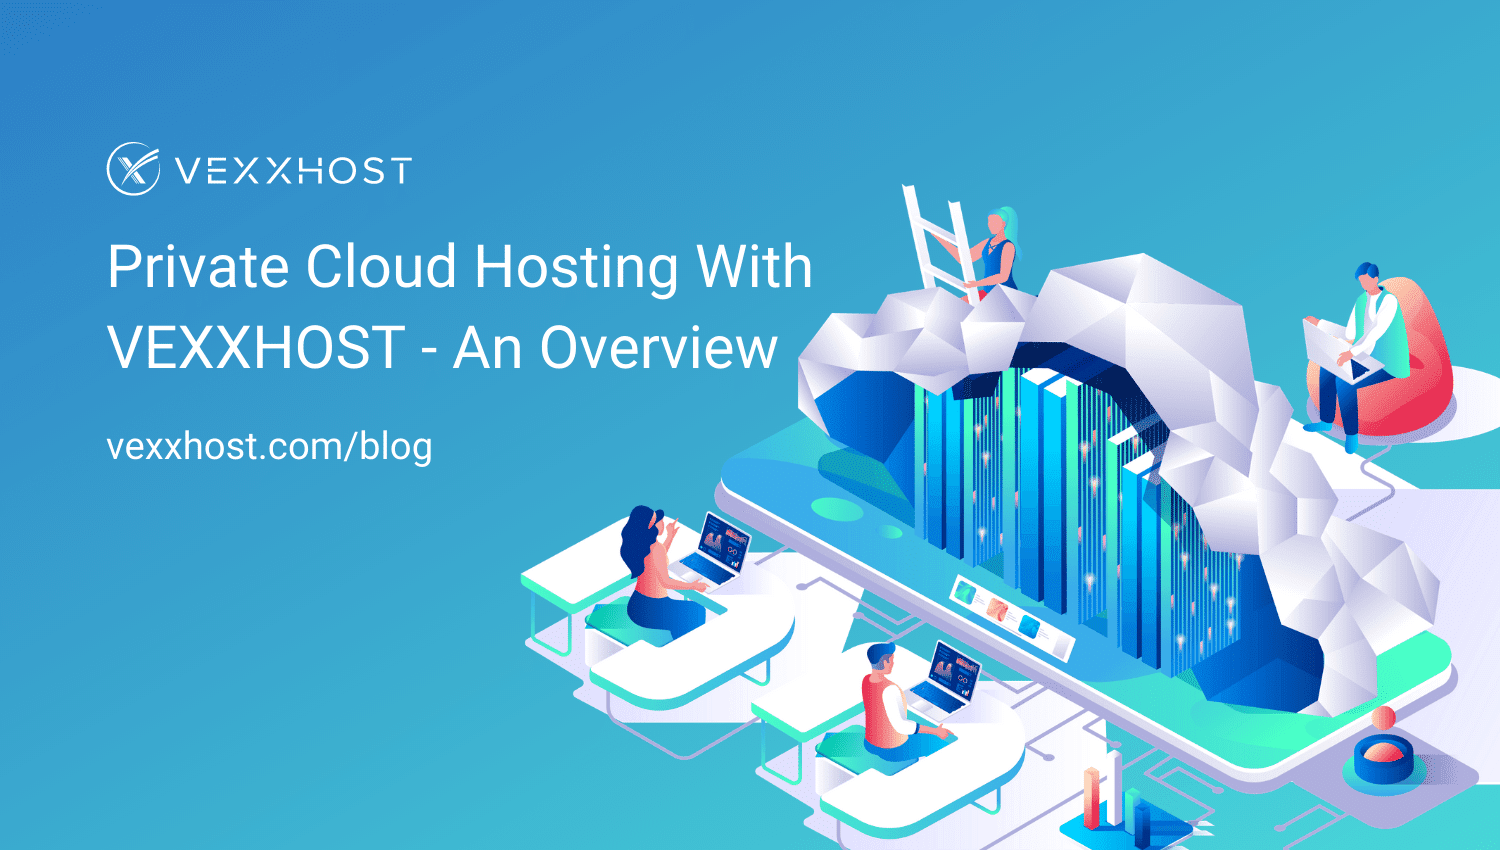 Private Cloud Hosting with VEXXHOST - An Overview